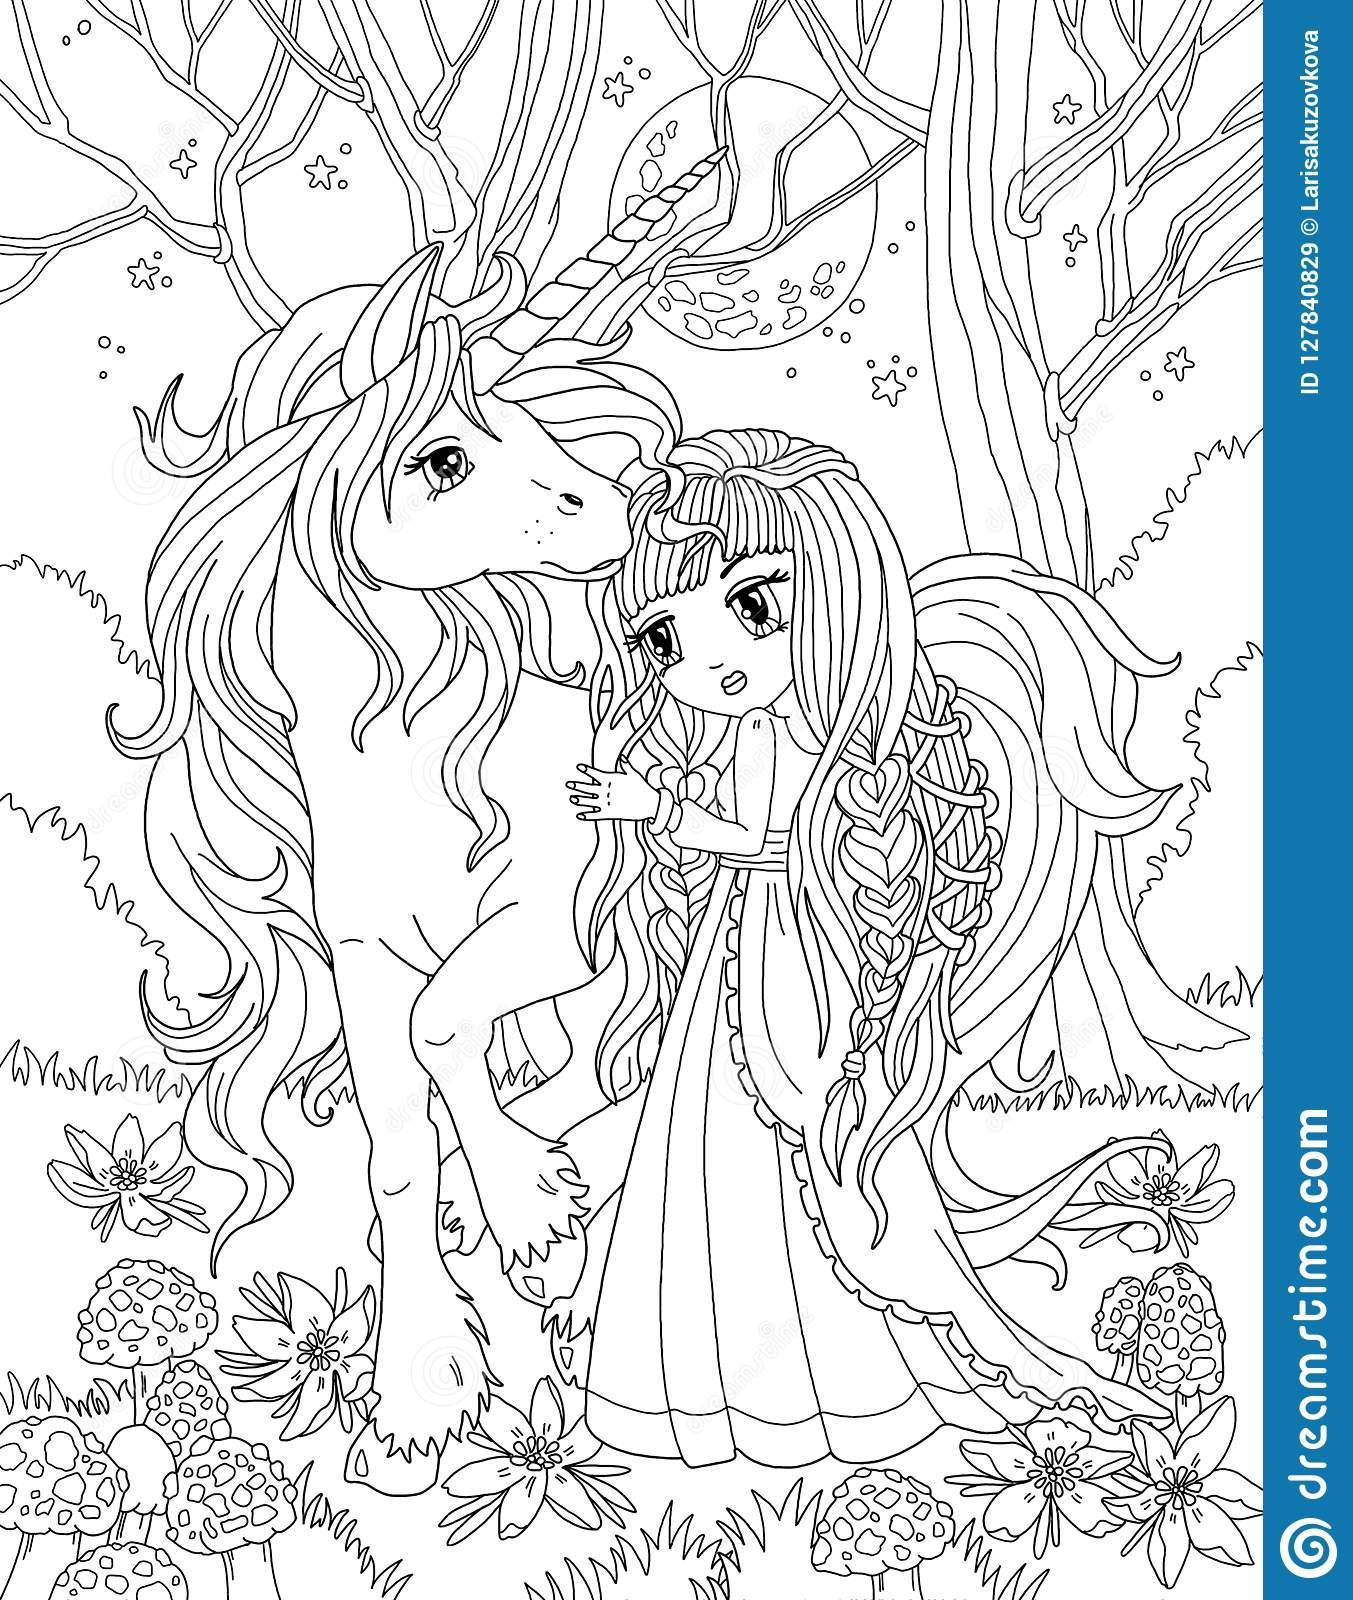 Pin By Patti Watson On 0 Fantasy Colouring Unicorn Coloring Pages Princess Coloring Princess Coloring Pages